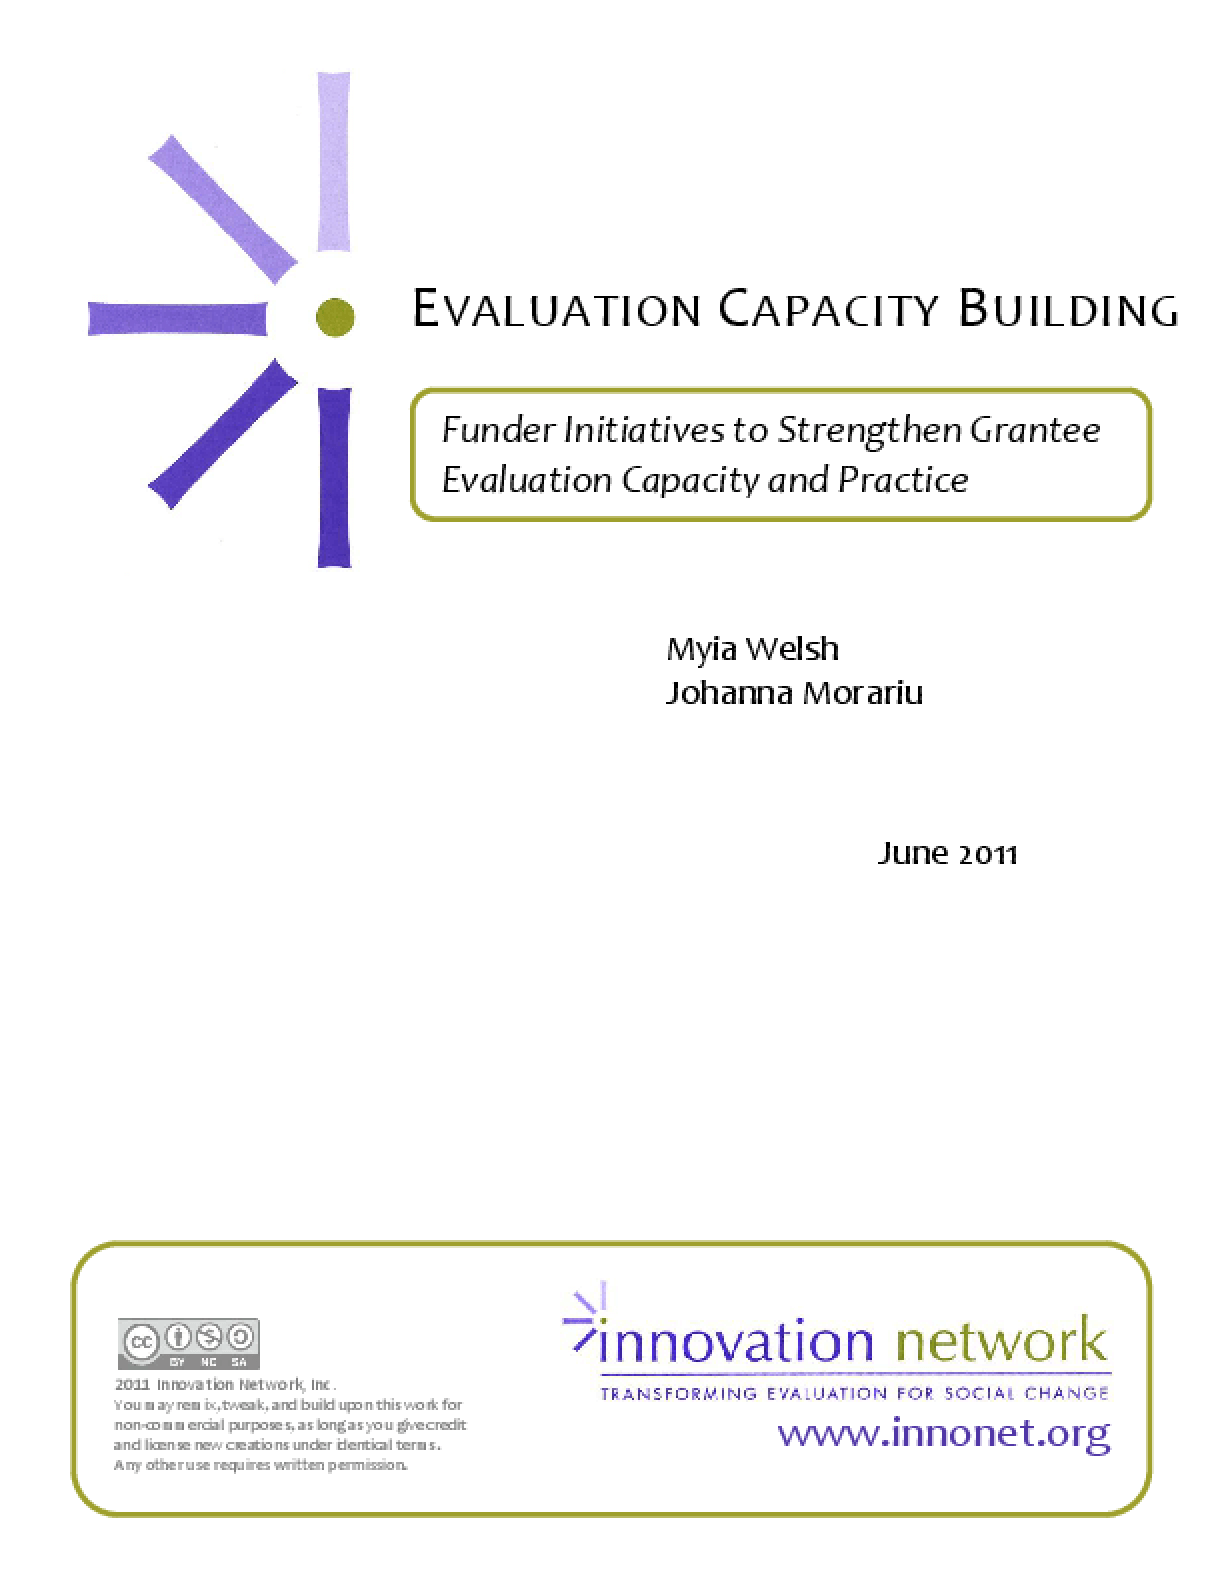 Evaluation Capacity Building: Funder Initiatives to Strengthen Grantee Evaluation Capacity and Practice